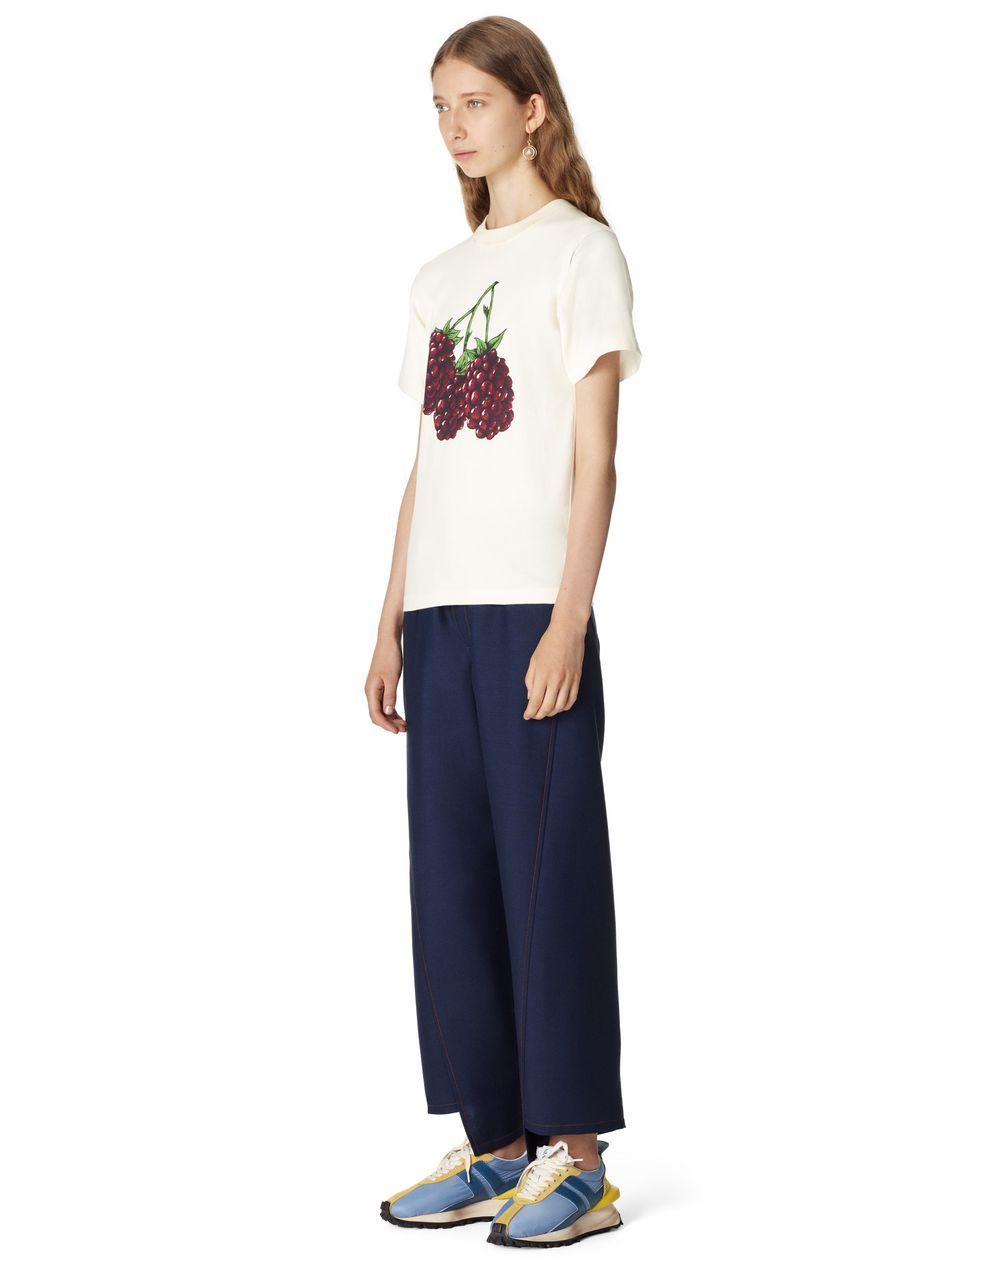 BLACKBERRY-SCENTED T-SHIRT - Lanvin